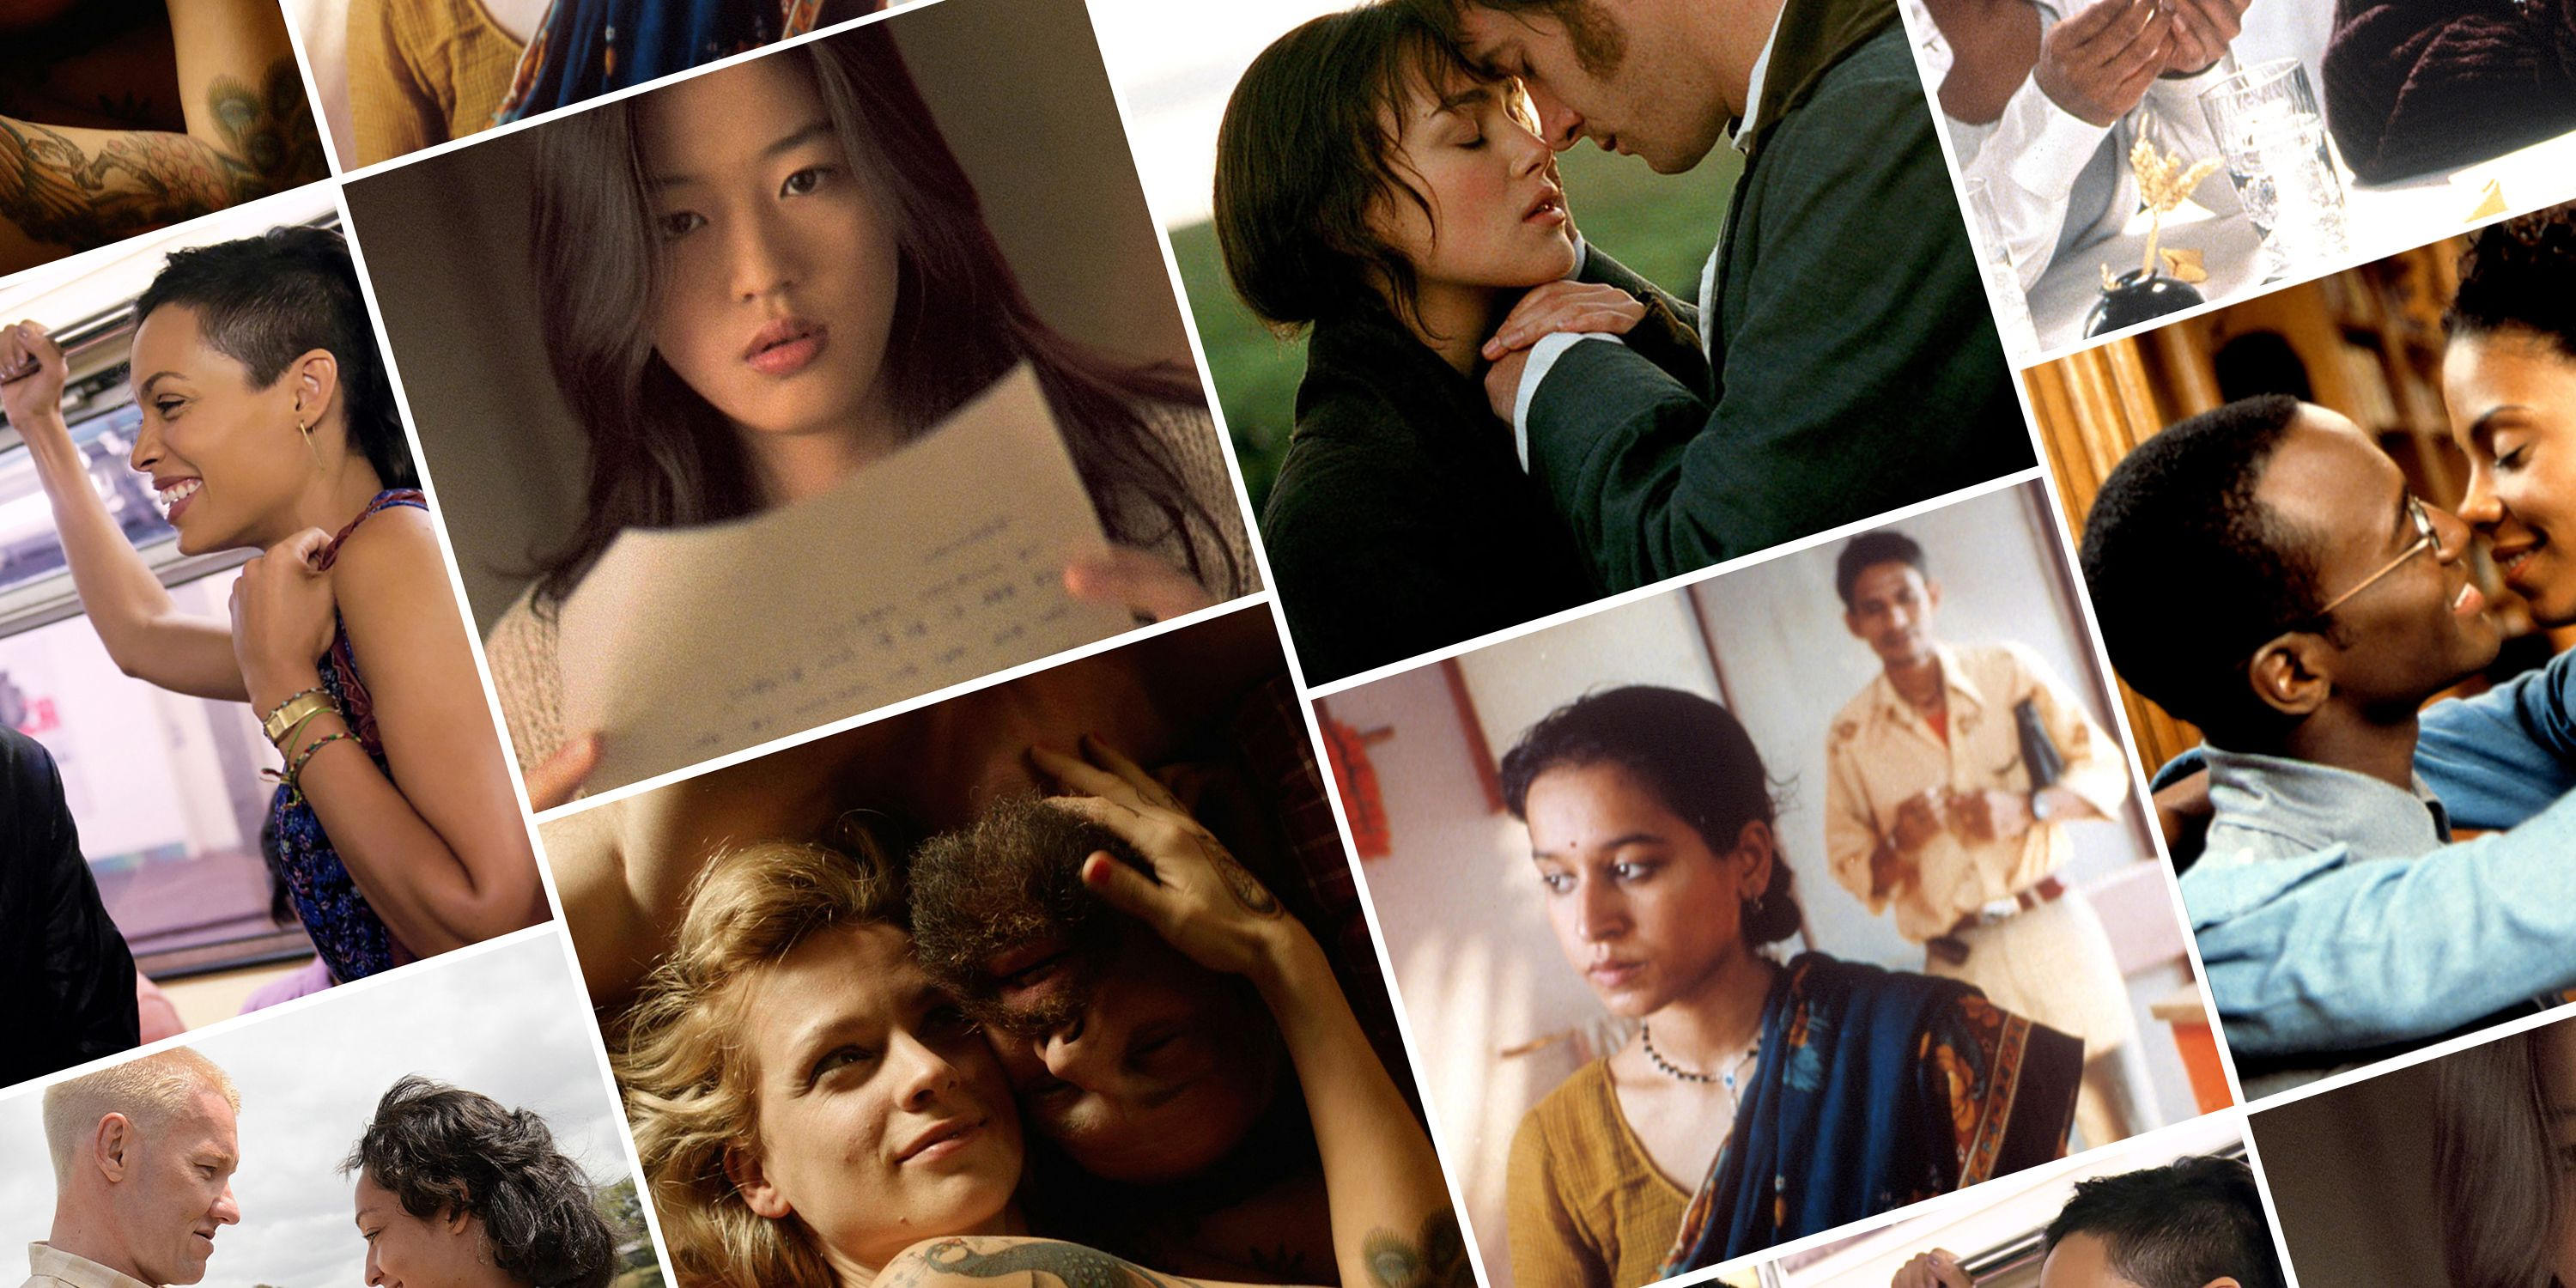 63 Most Romantic Movies - Best Movies About Love